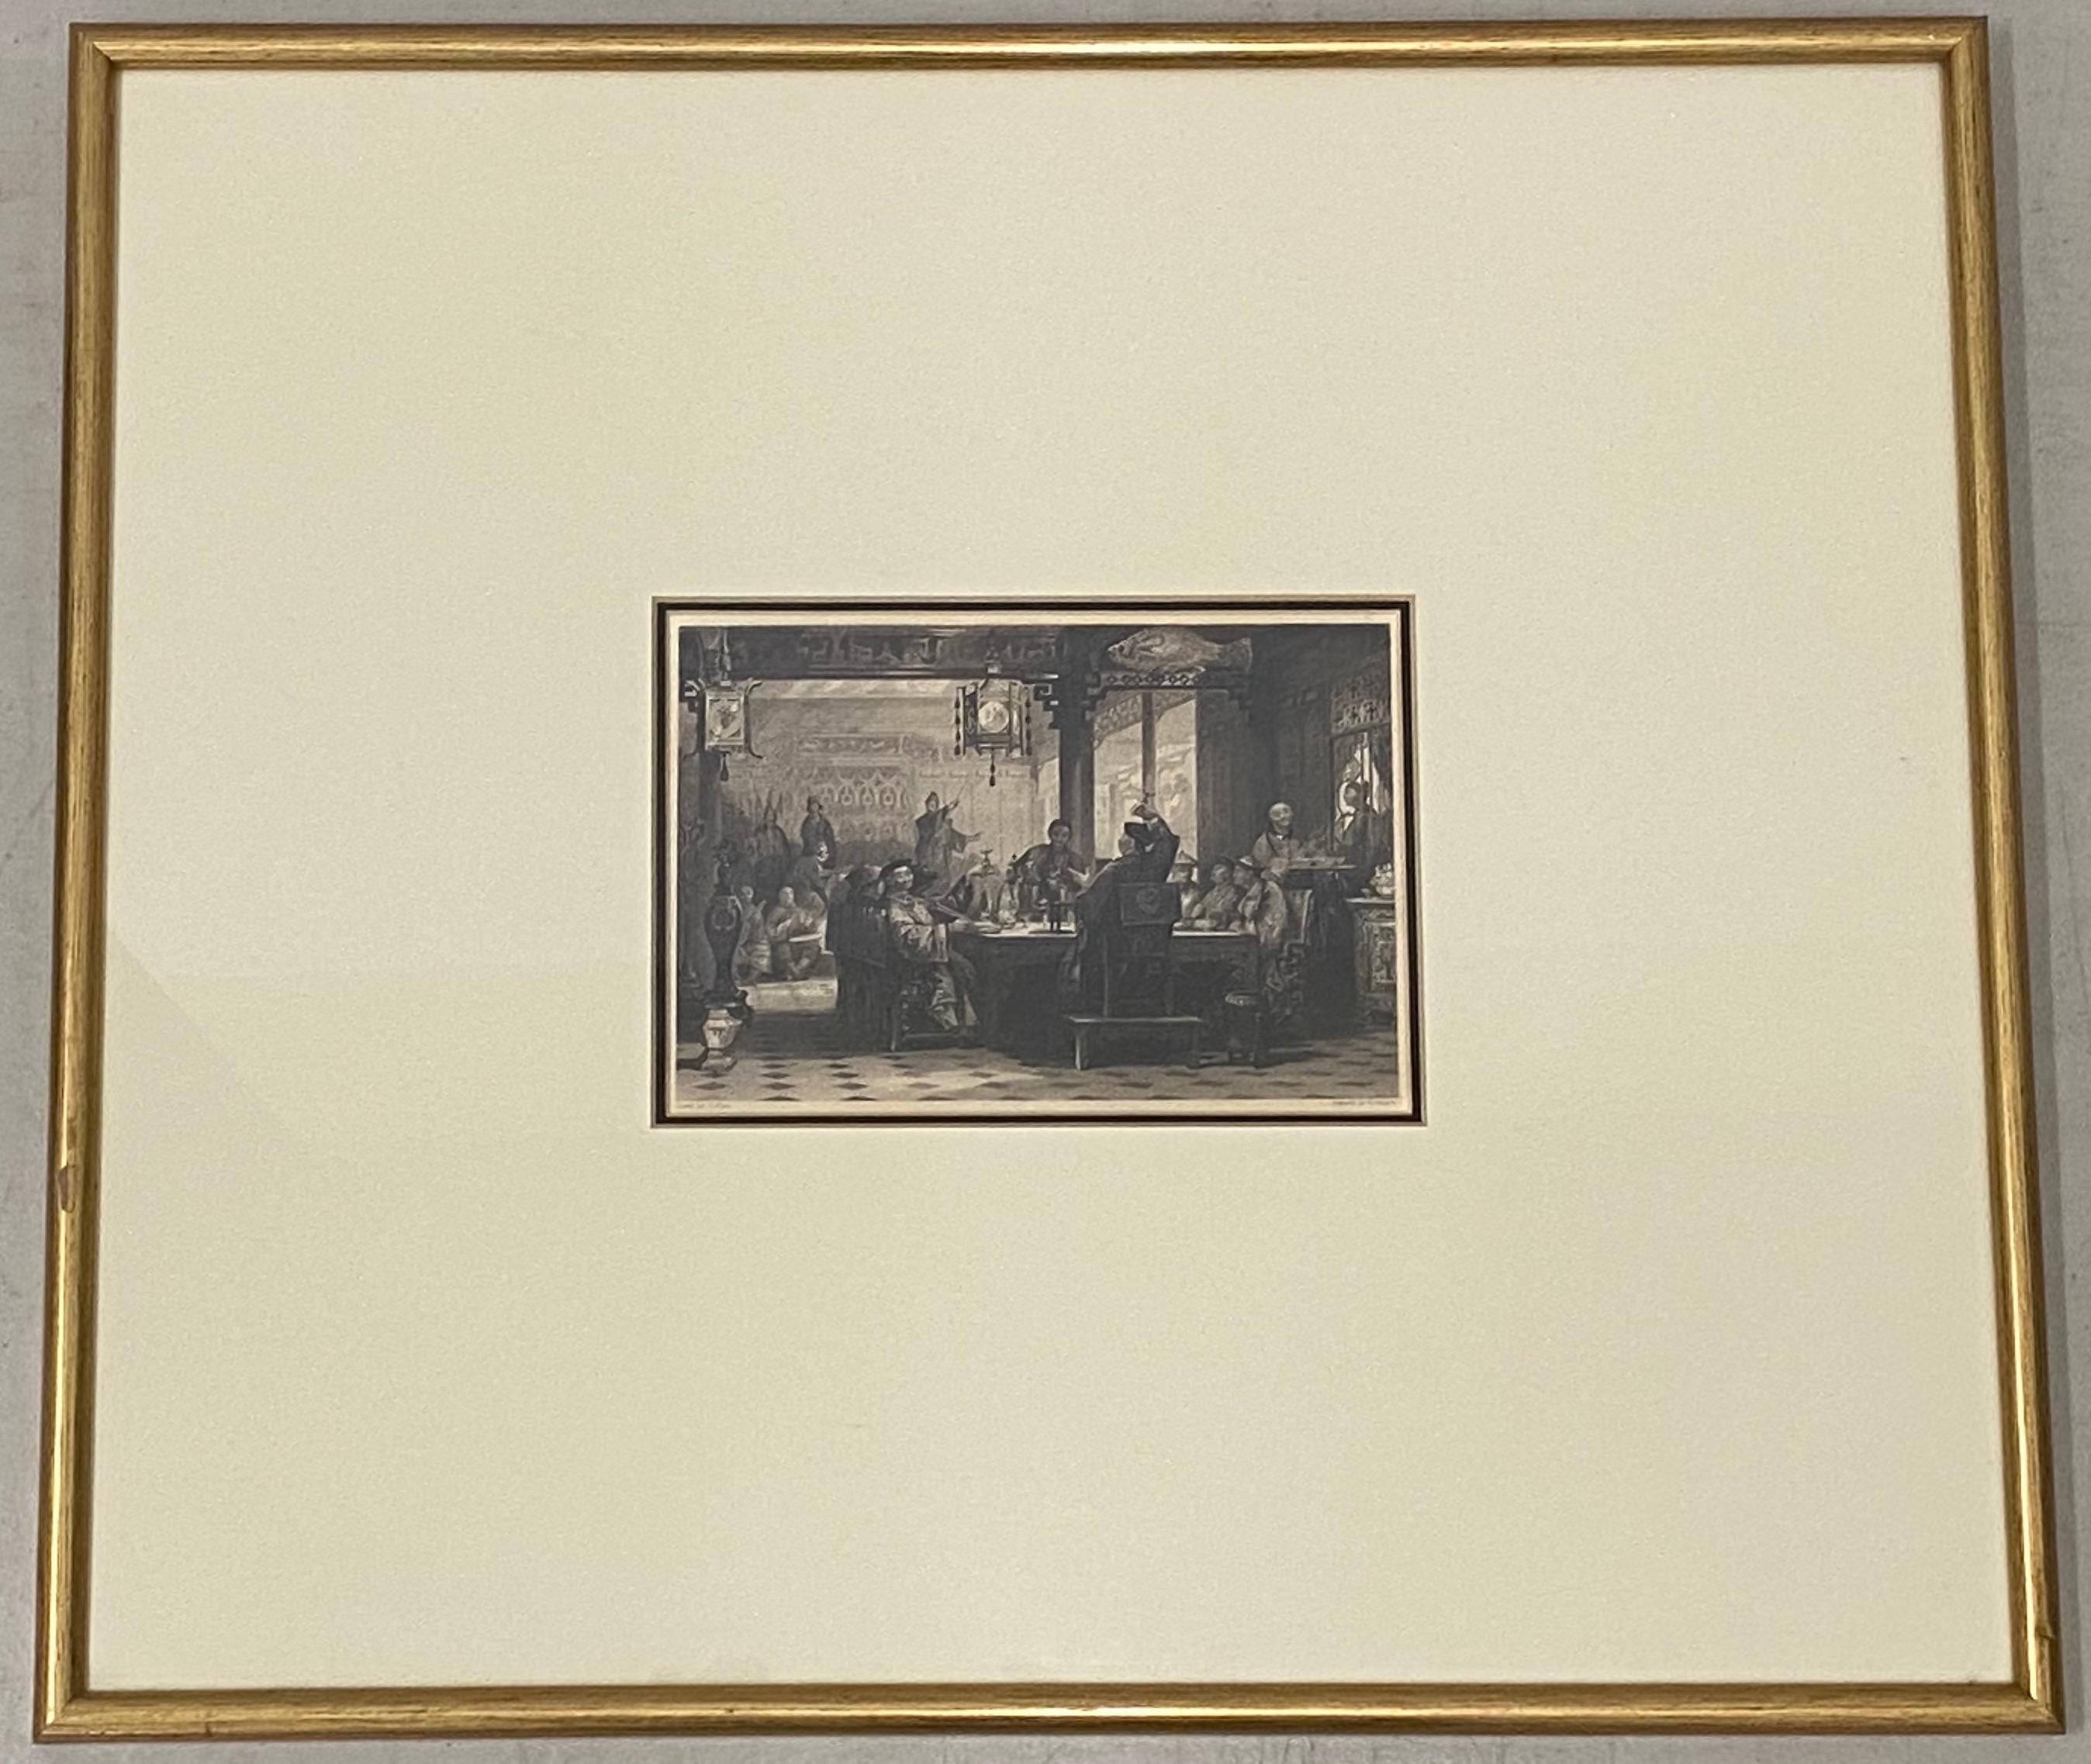 """G. Paterson """"Dinner Party at a Mandarin's House"""" Engraving After T. Allom c.1840"""